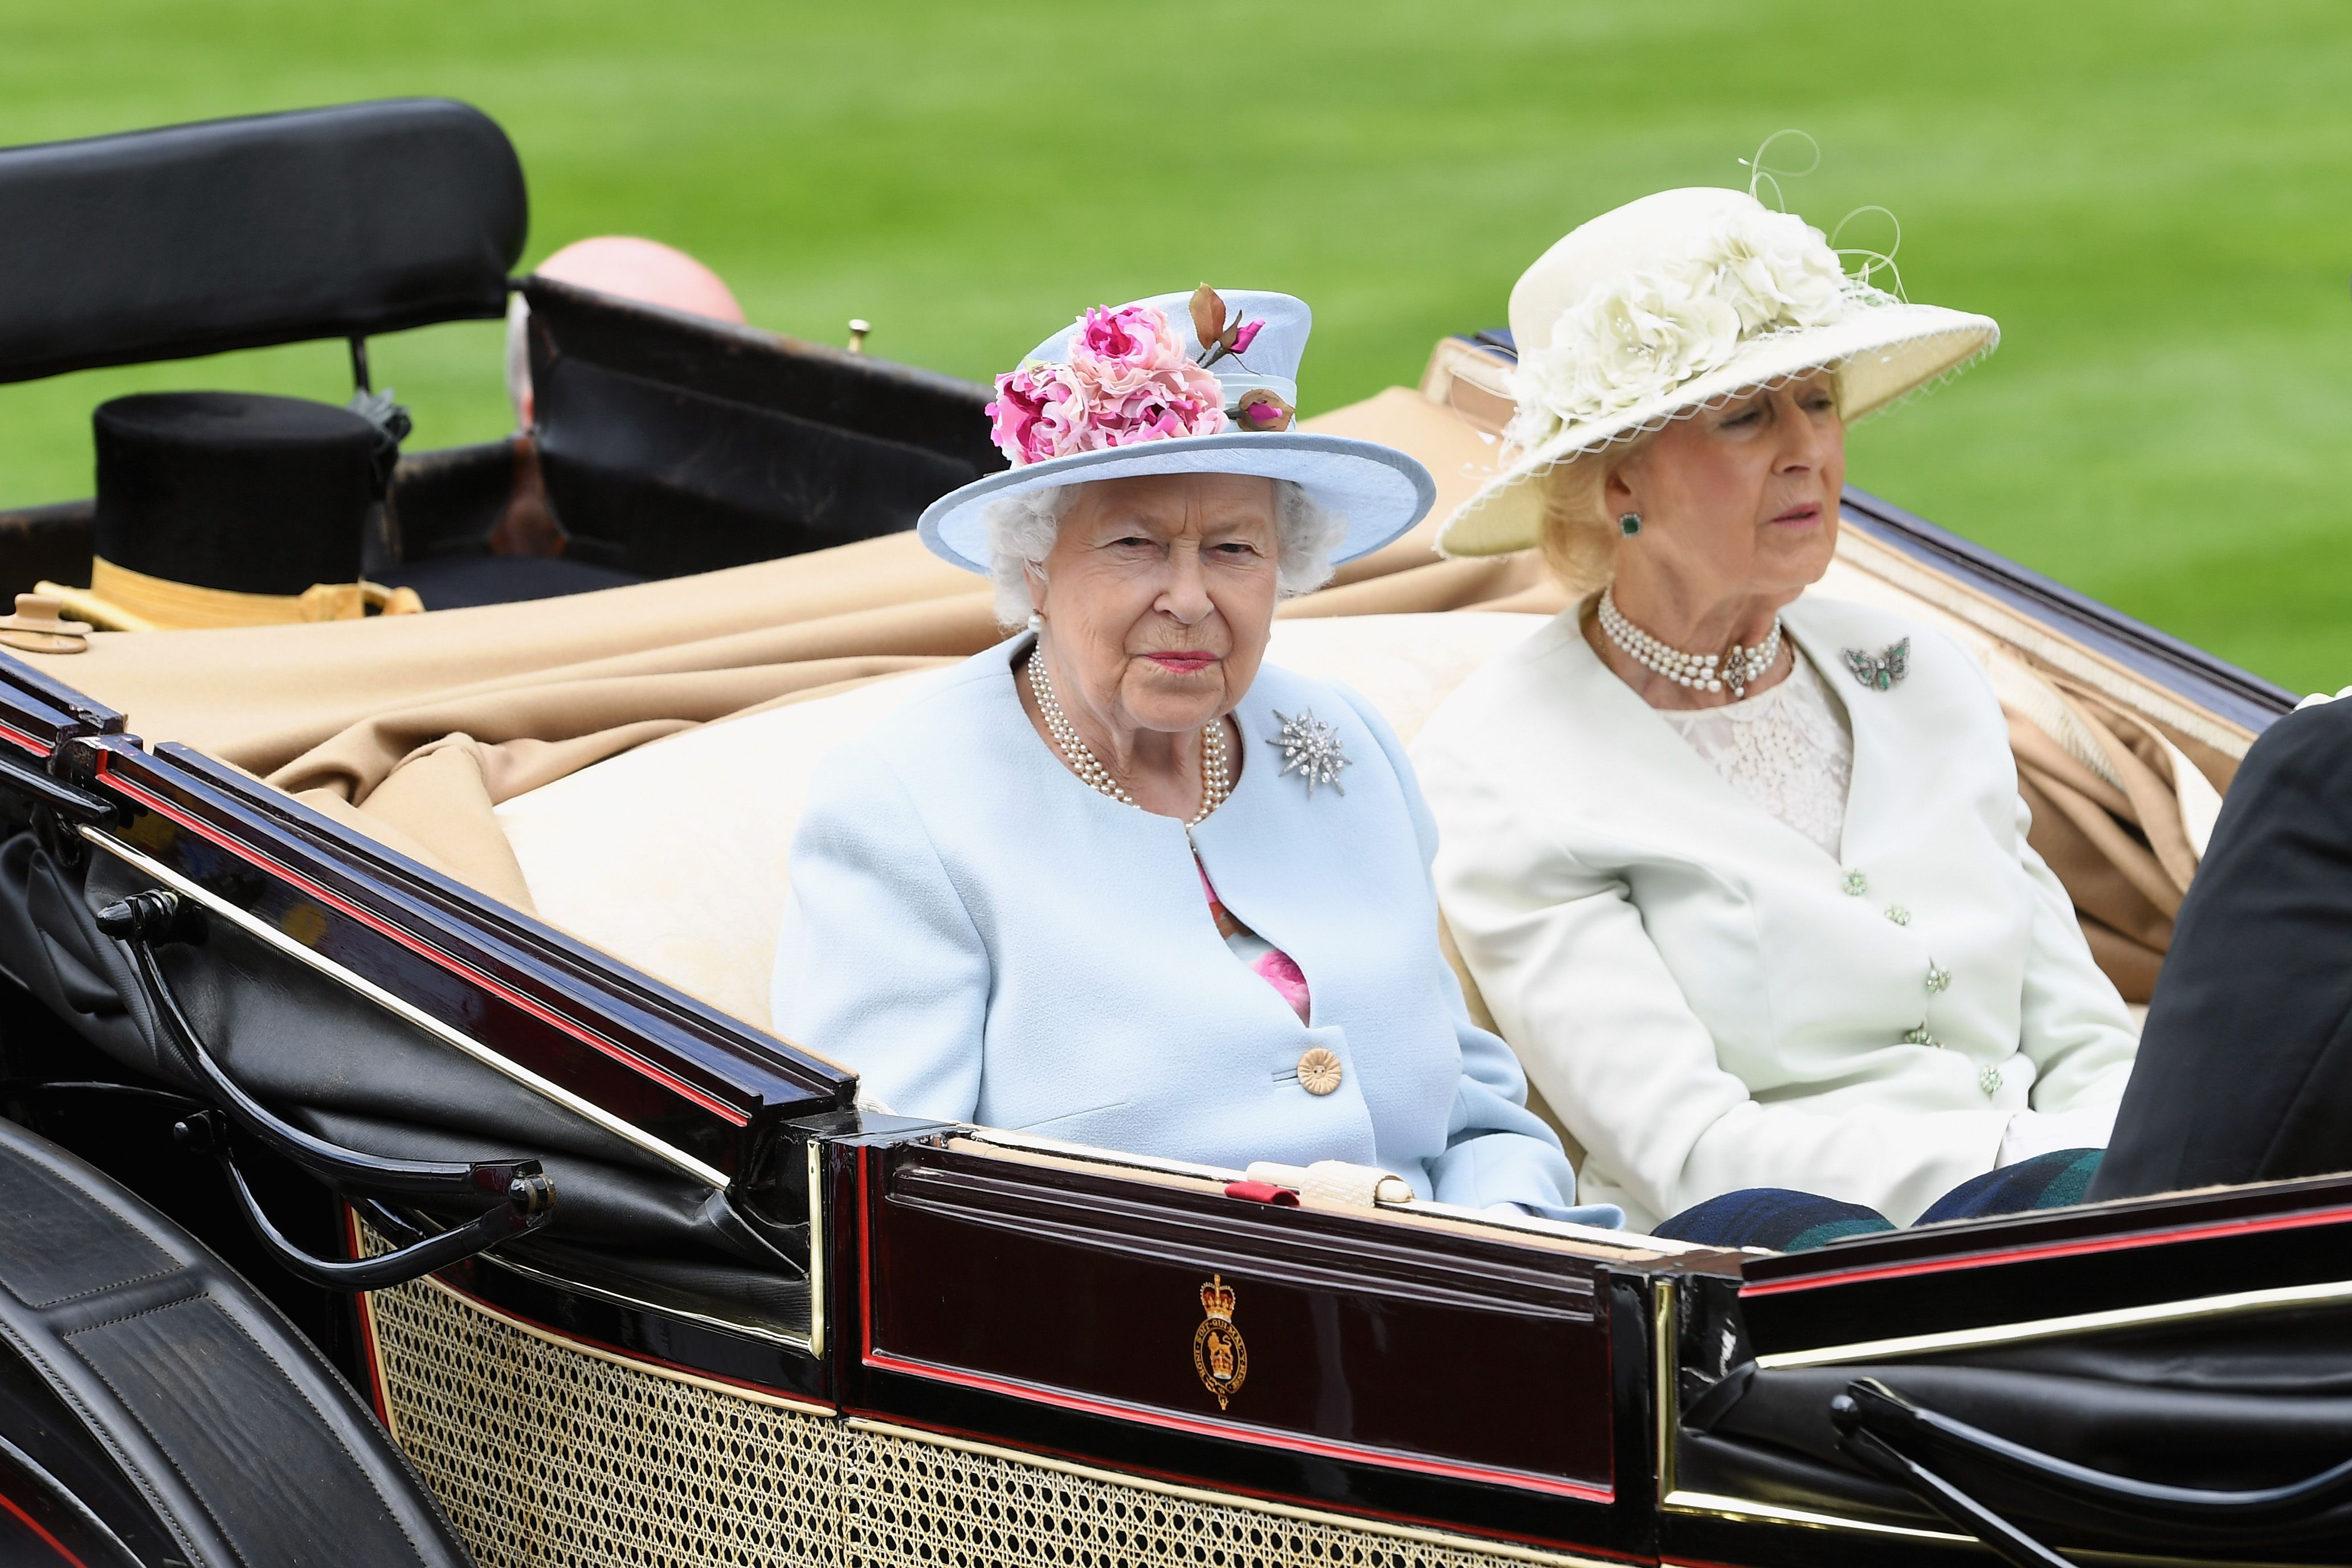 Queen Elizabeth II and Princess Alexandra, The Honourable Lady Ogilvy at the royal procession on day 2 of Royal Ascot at Ascot Racecourse on June 20, 2018 | Photo: Getty Images